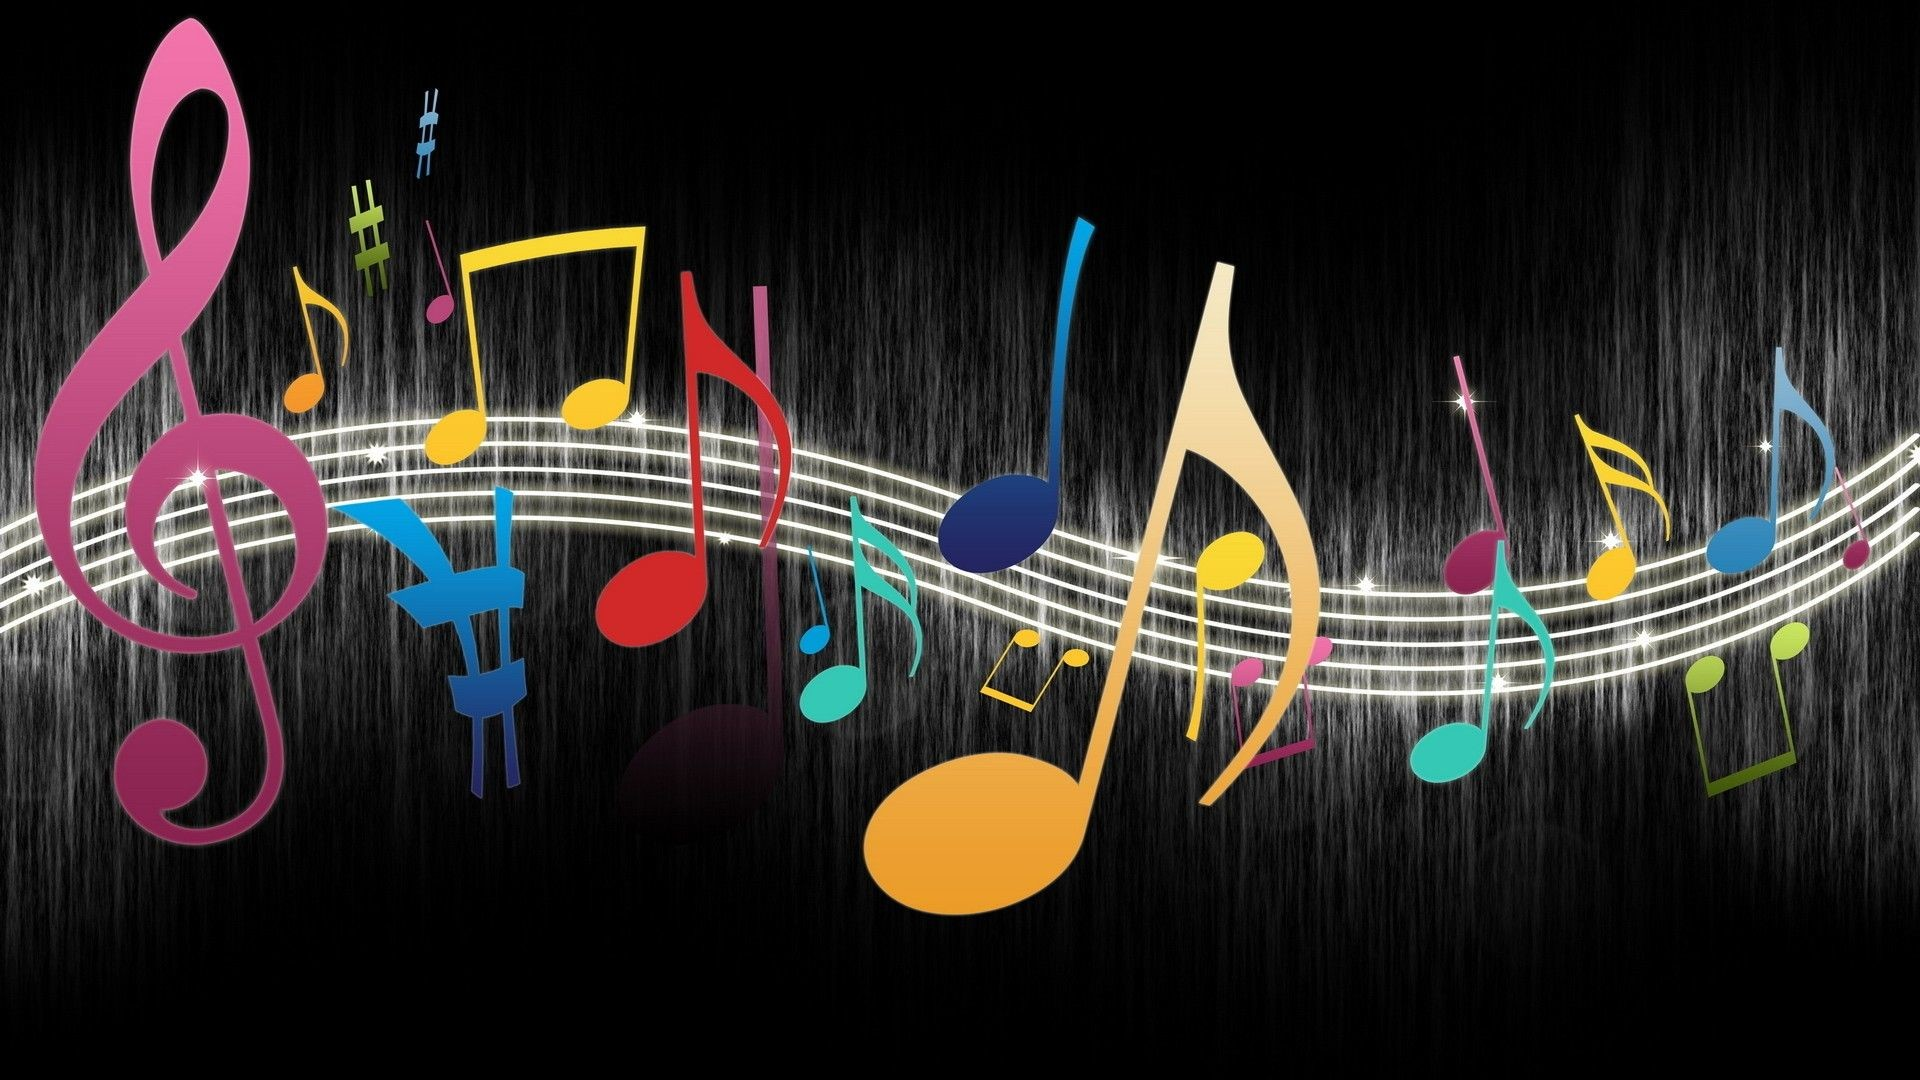 Colorful Music Notes Wallpaper Clipart Panda Free Clipart Images